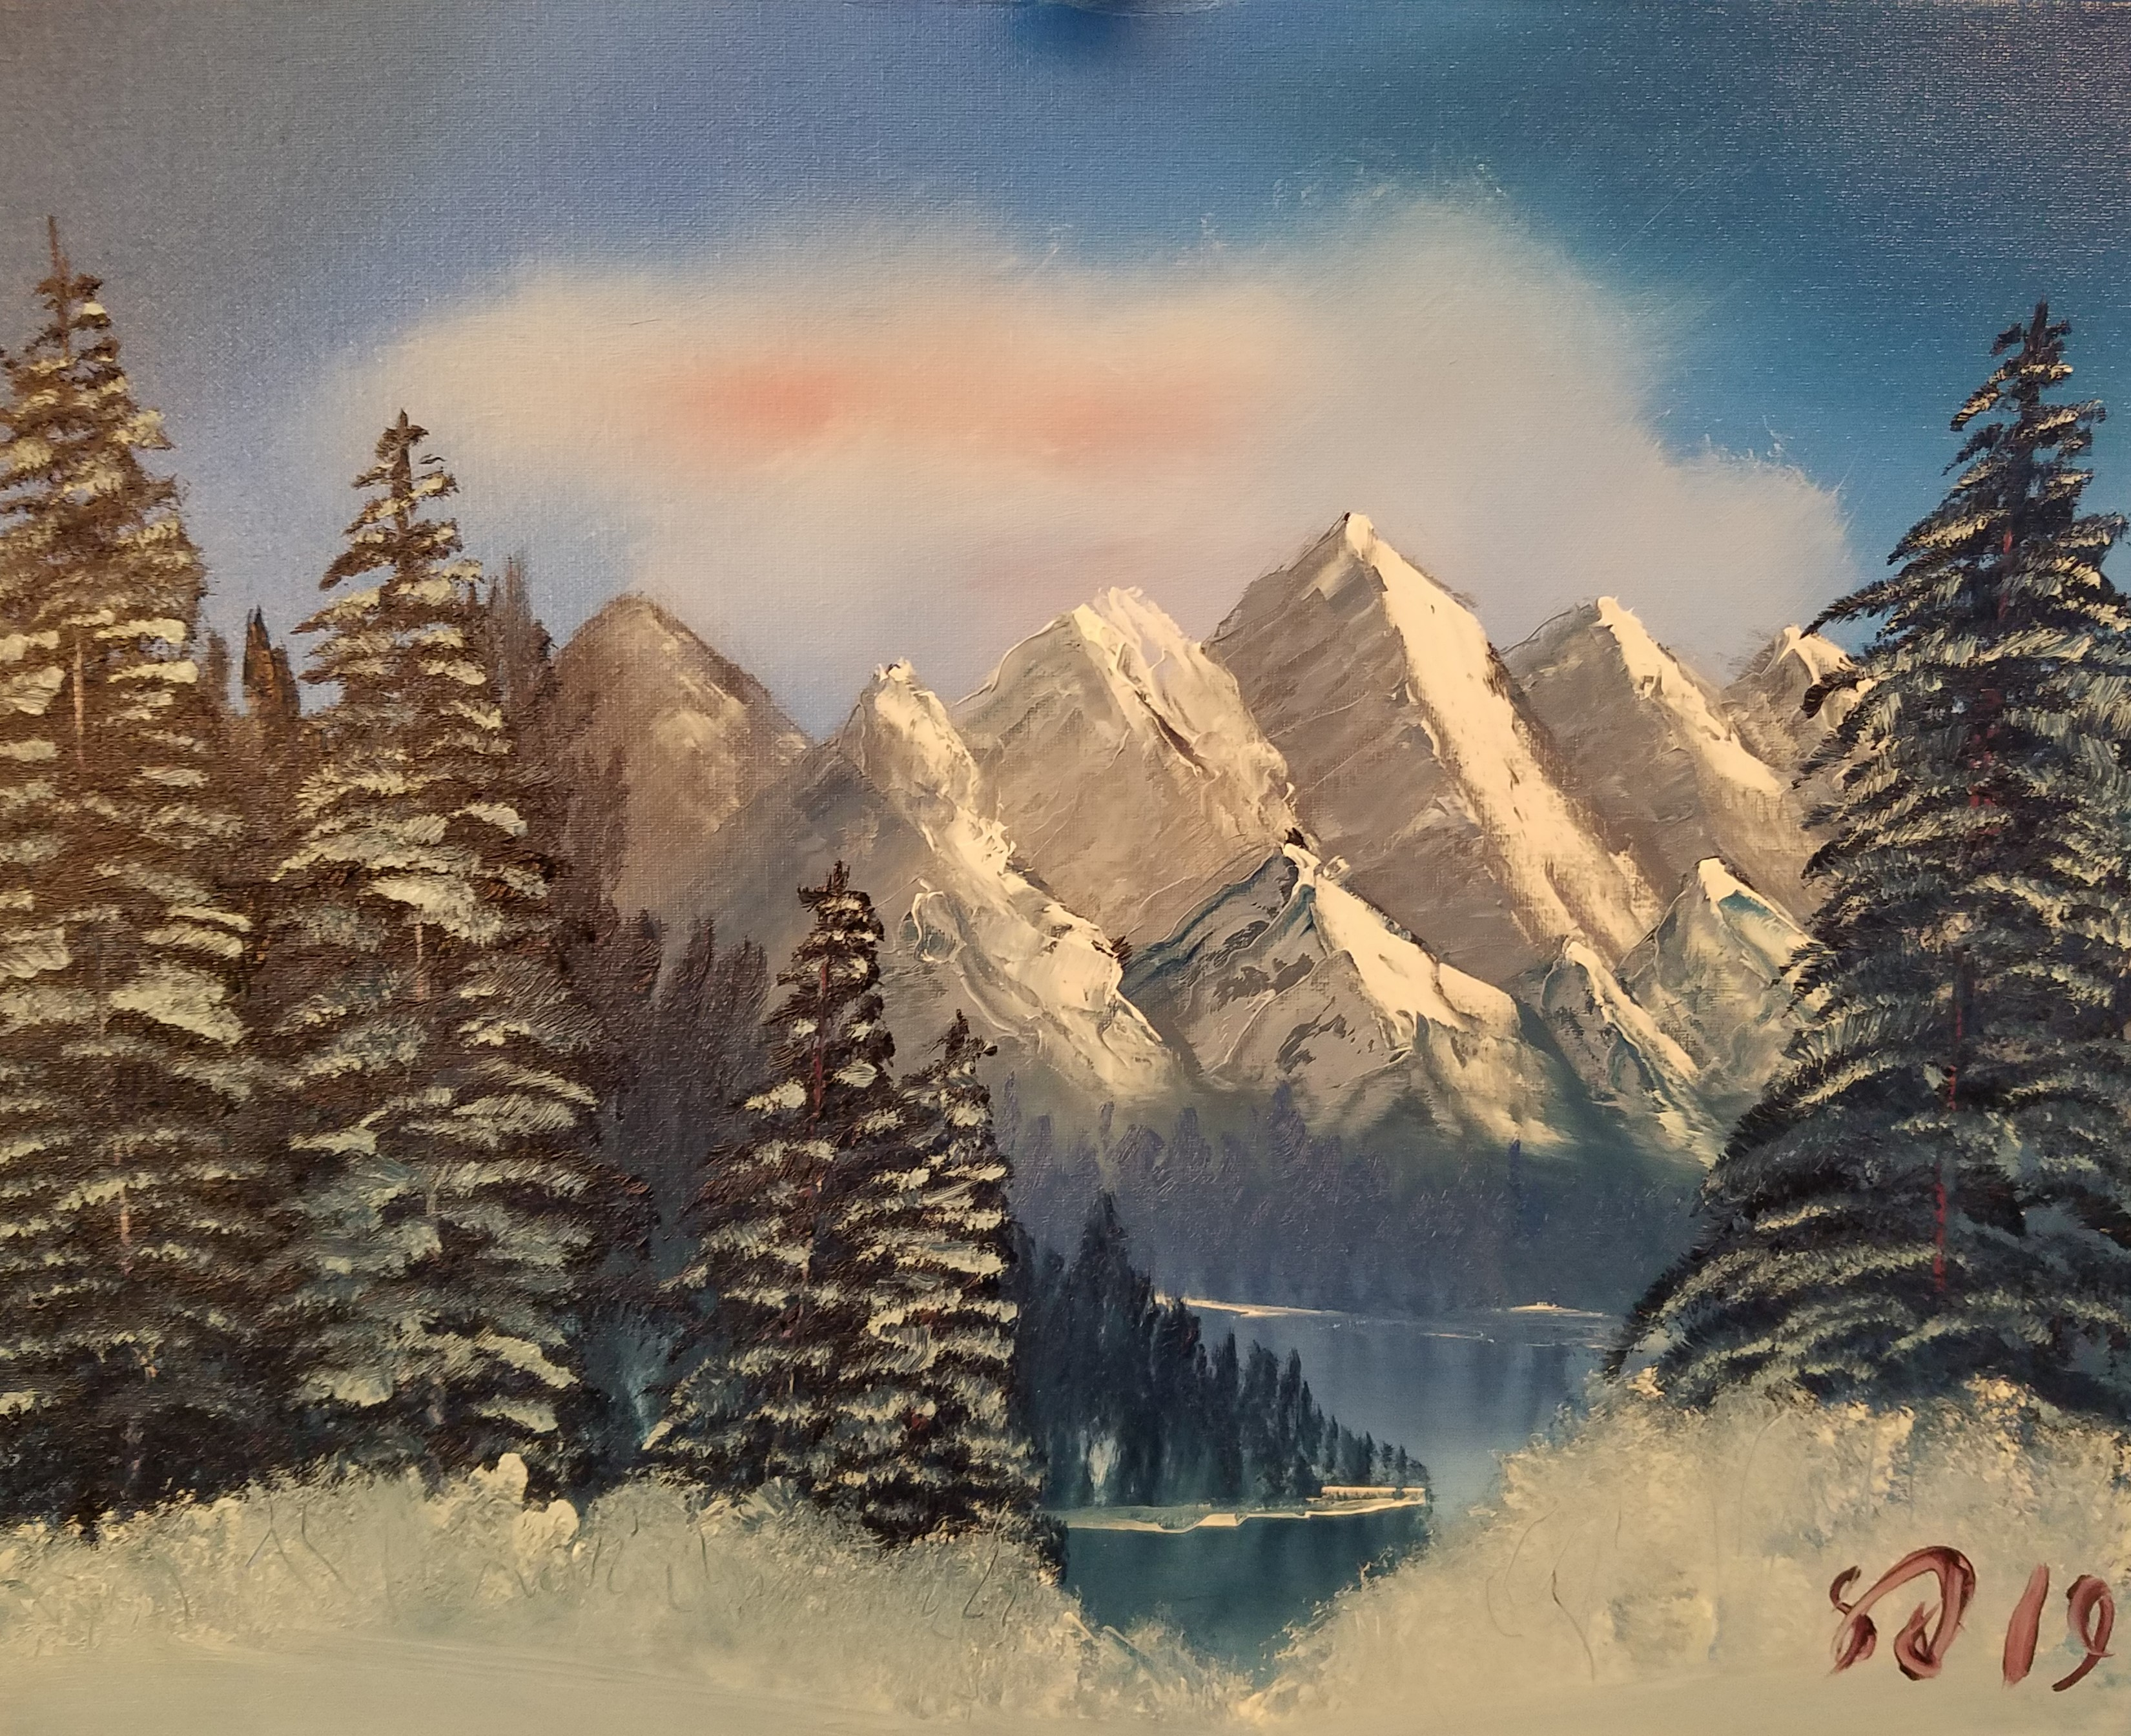 Painting 001 - Portrait of Winter - Cropped